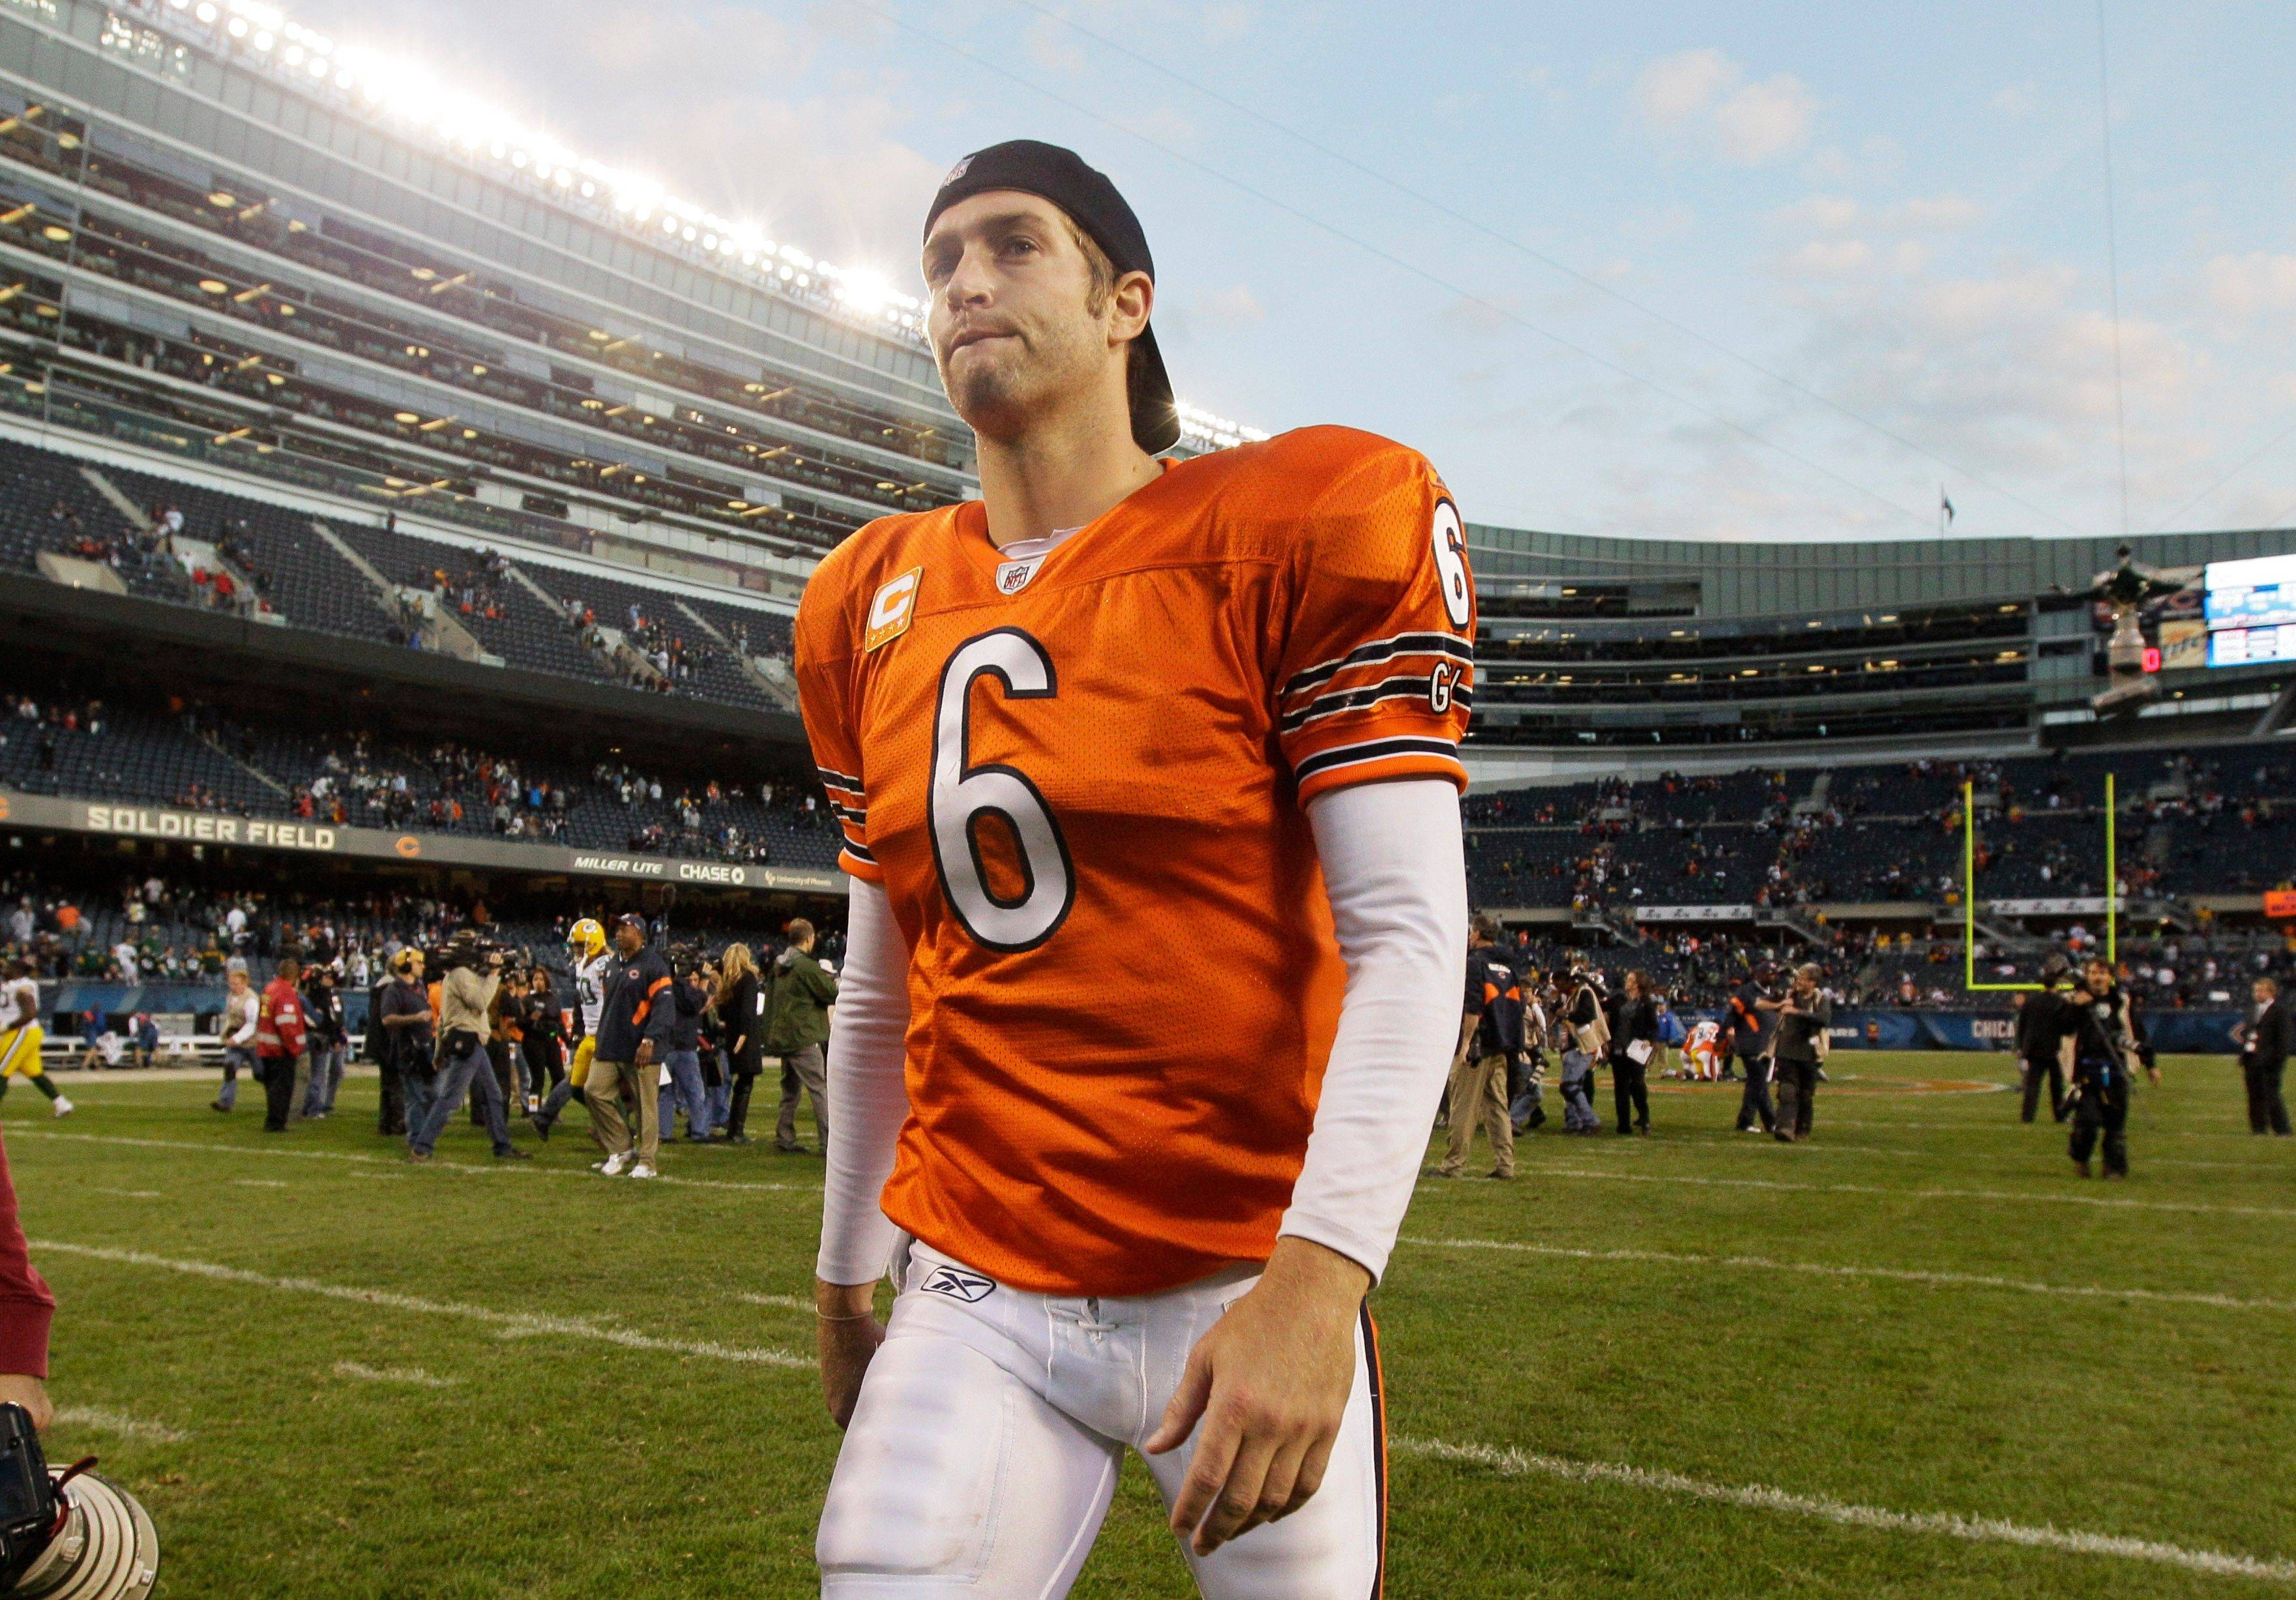 Bears quarterback Jay Cutler walks off Soldier Field Sunday after the Green Bay Packers defeated the Bears 27-17.